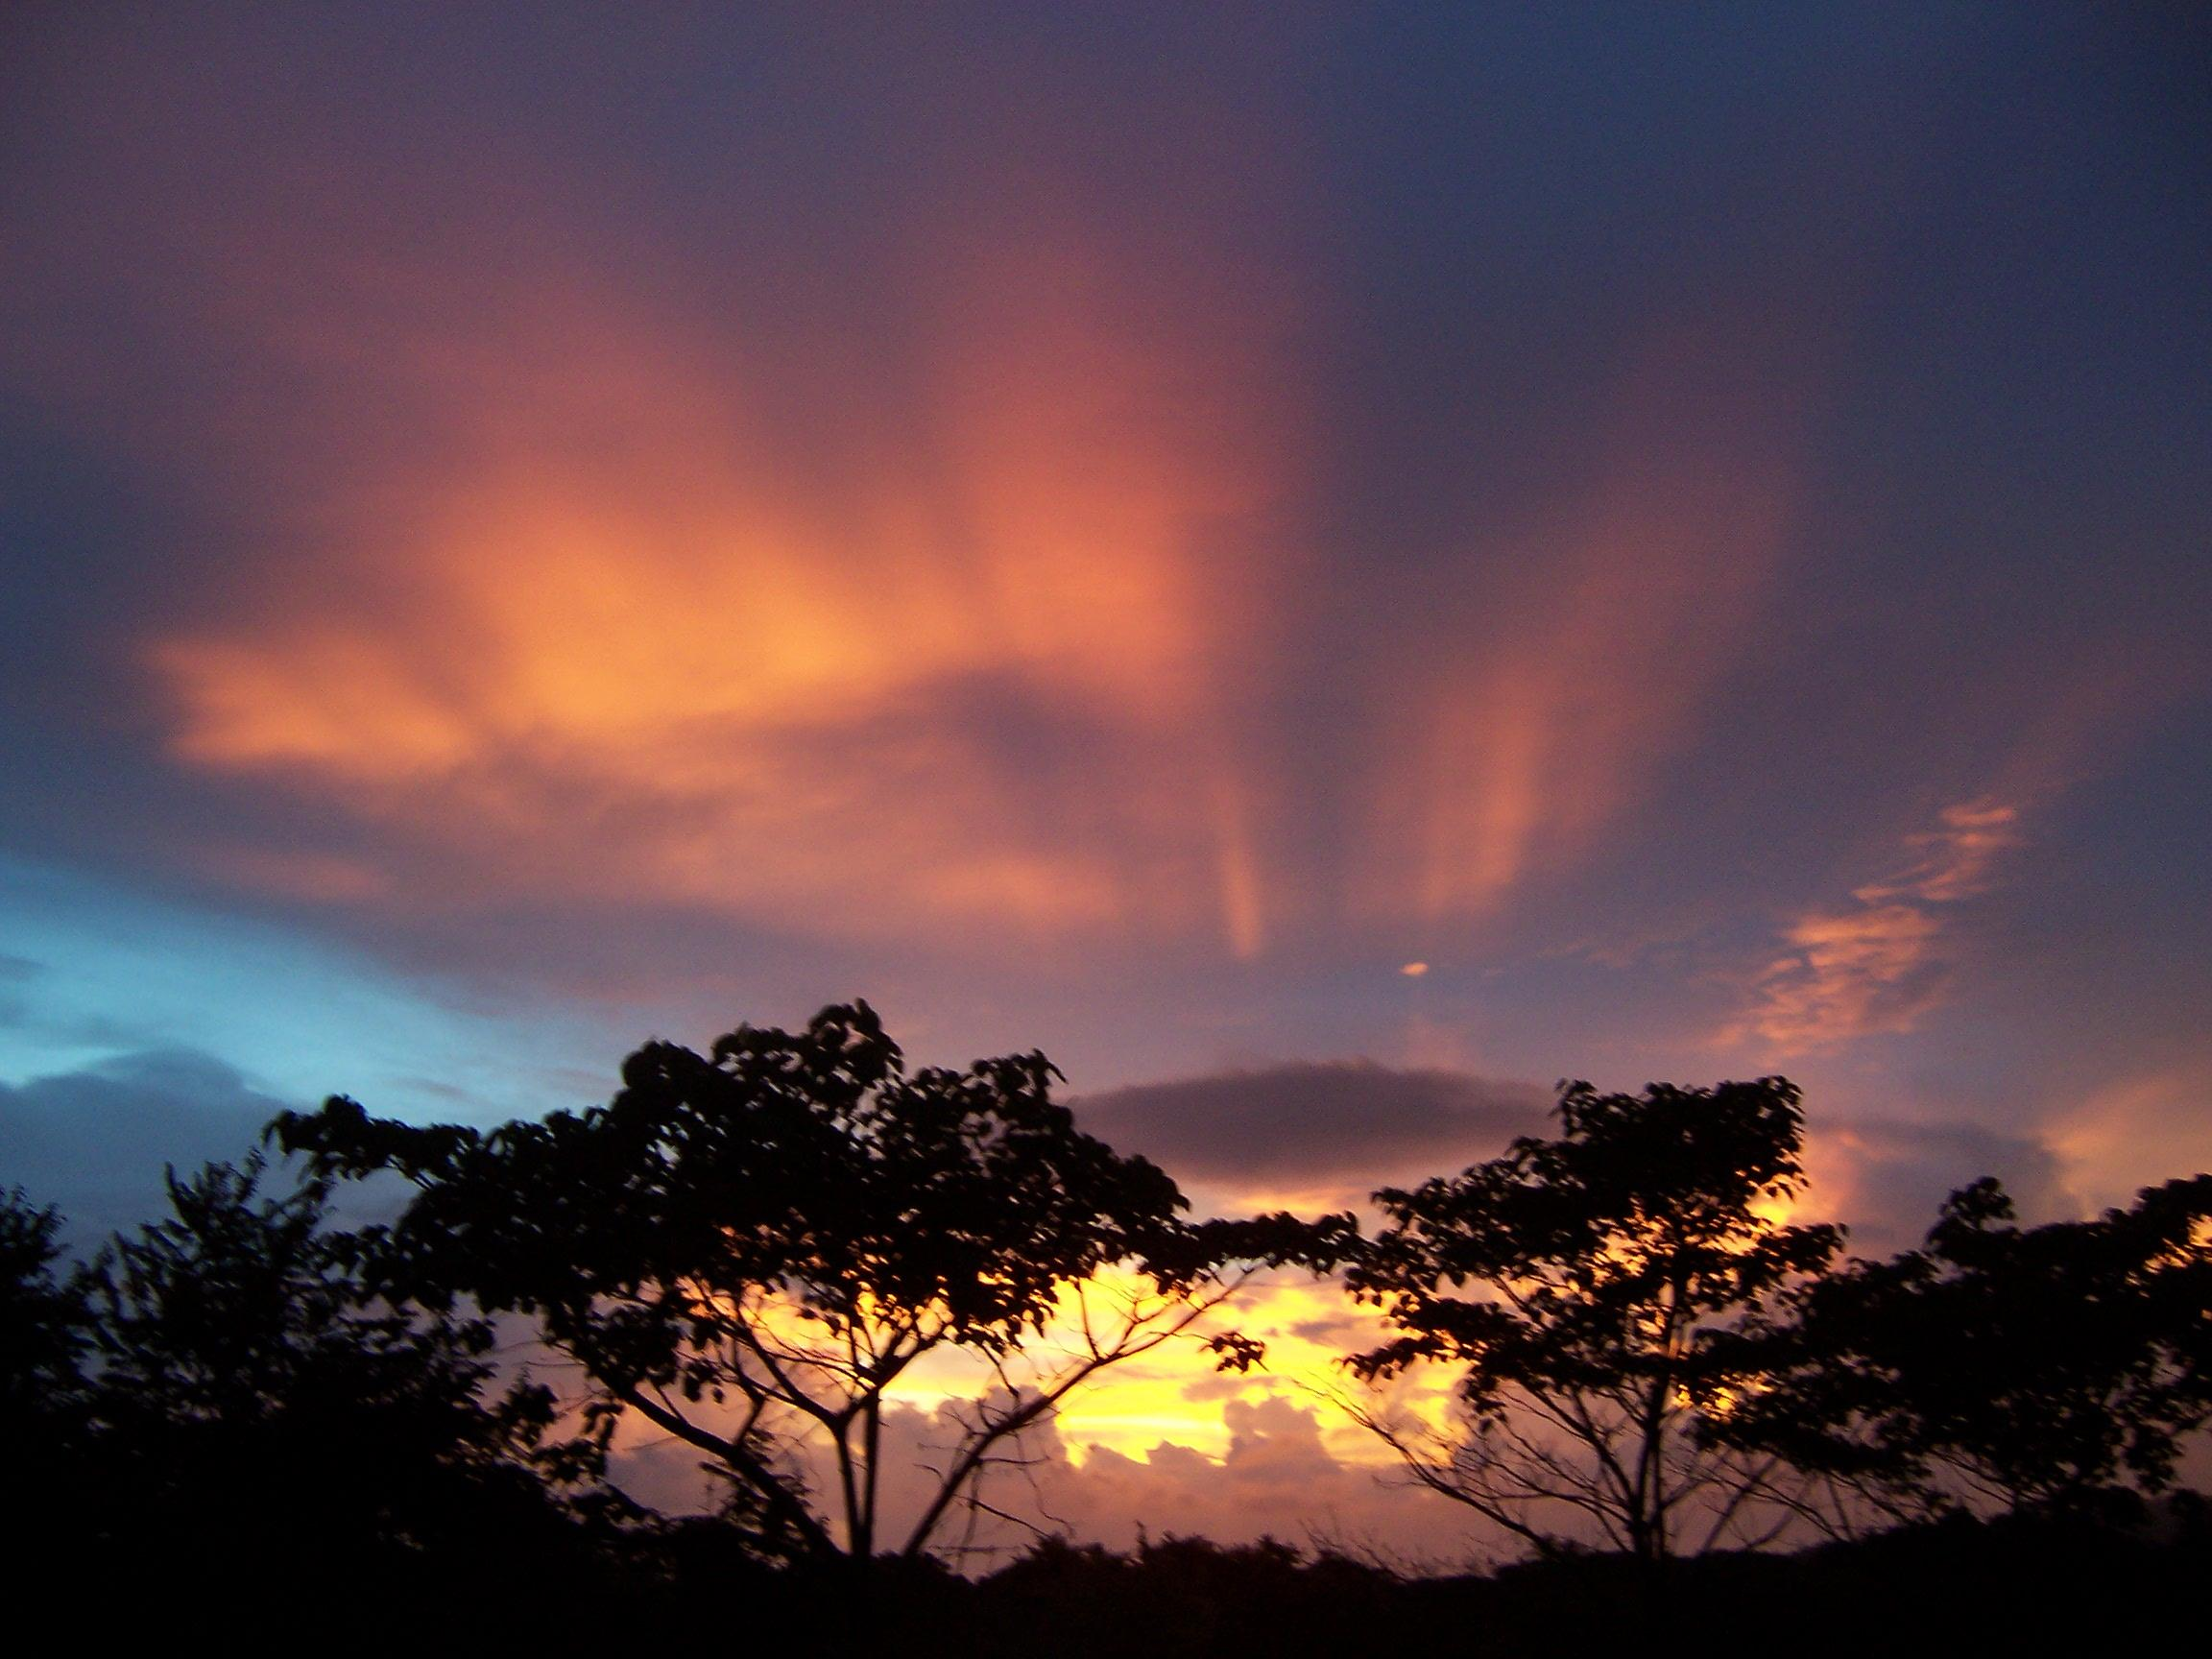 Guanacaste trees and amazing sunset in Guanacaste Costa Rica